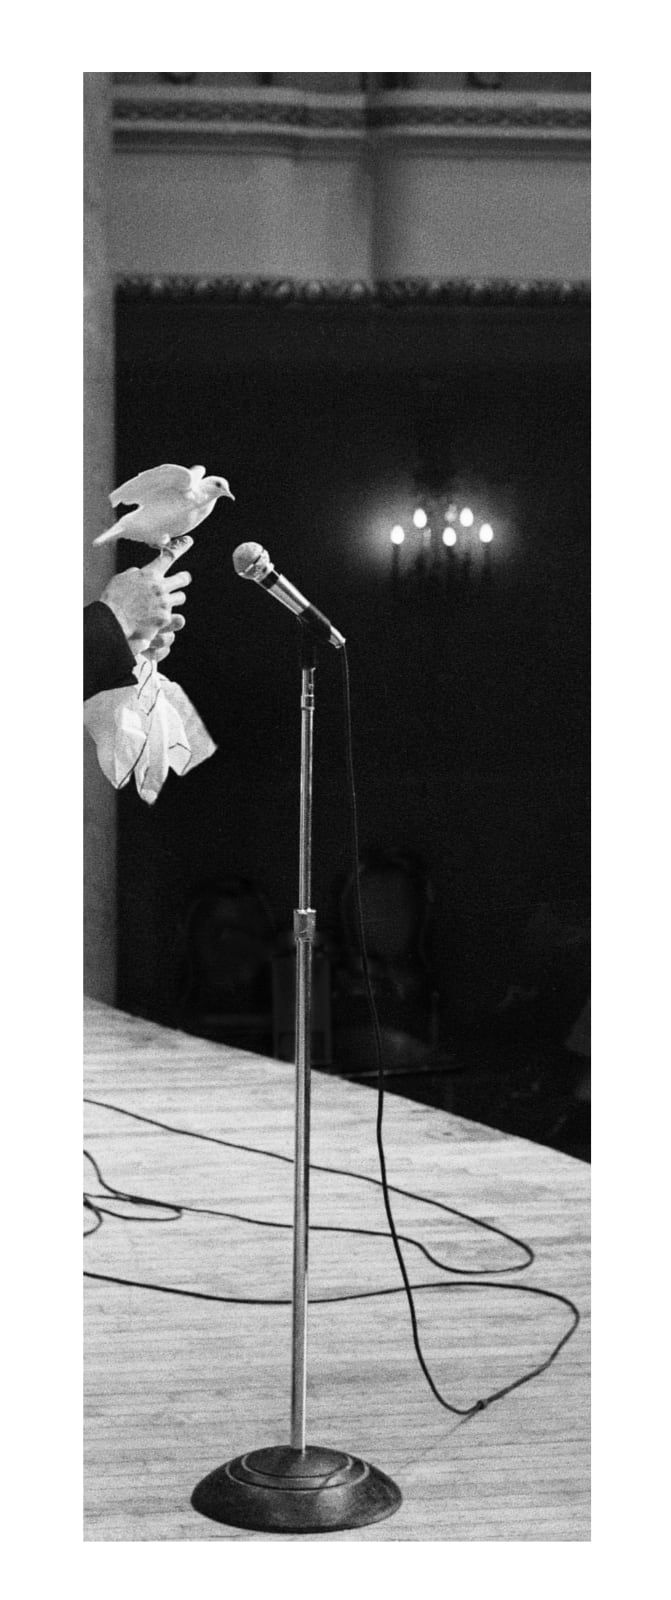 Lindsey White You, the performer, 2021 silver gelatin print 11 7/16 x 27 1/2 inches 1/3 + 2 AP